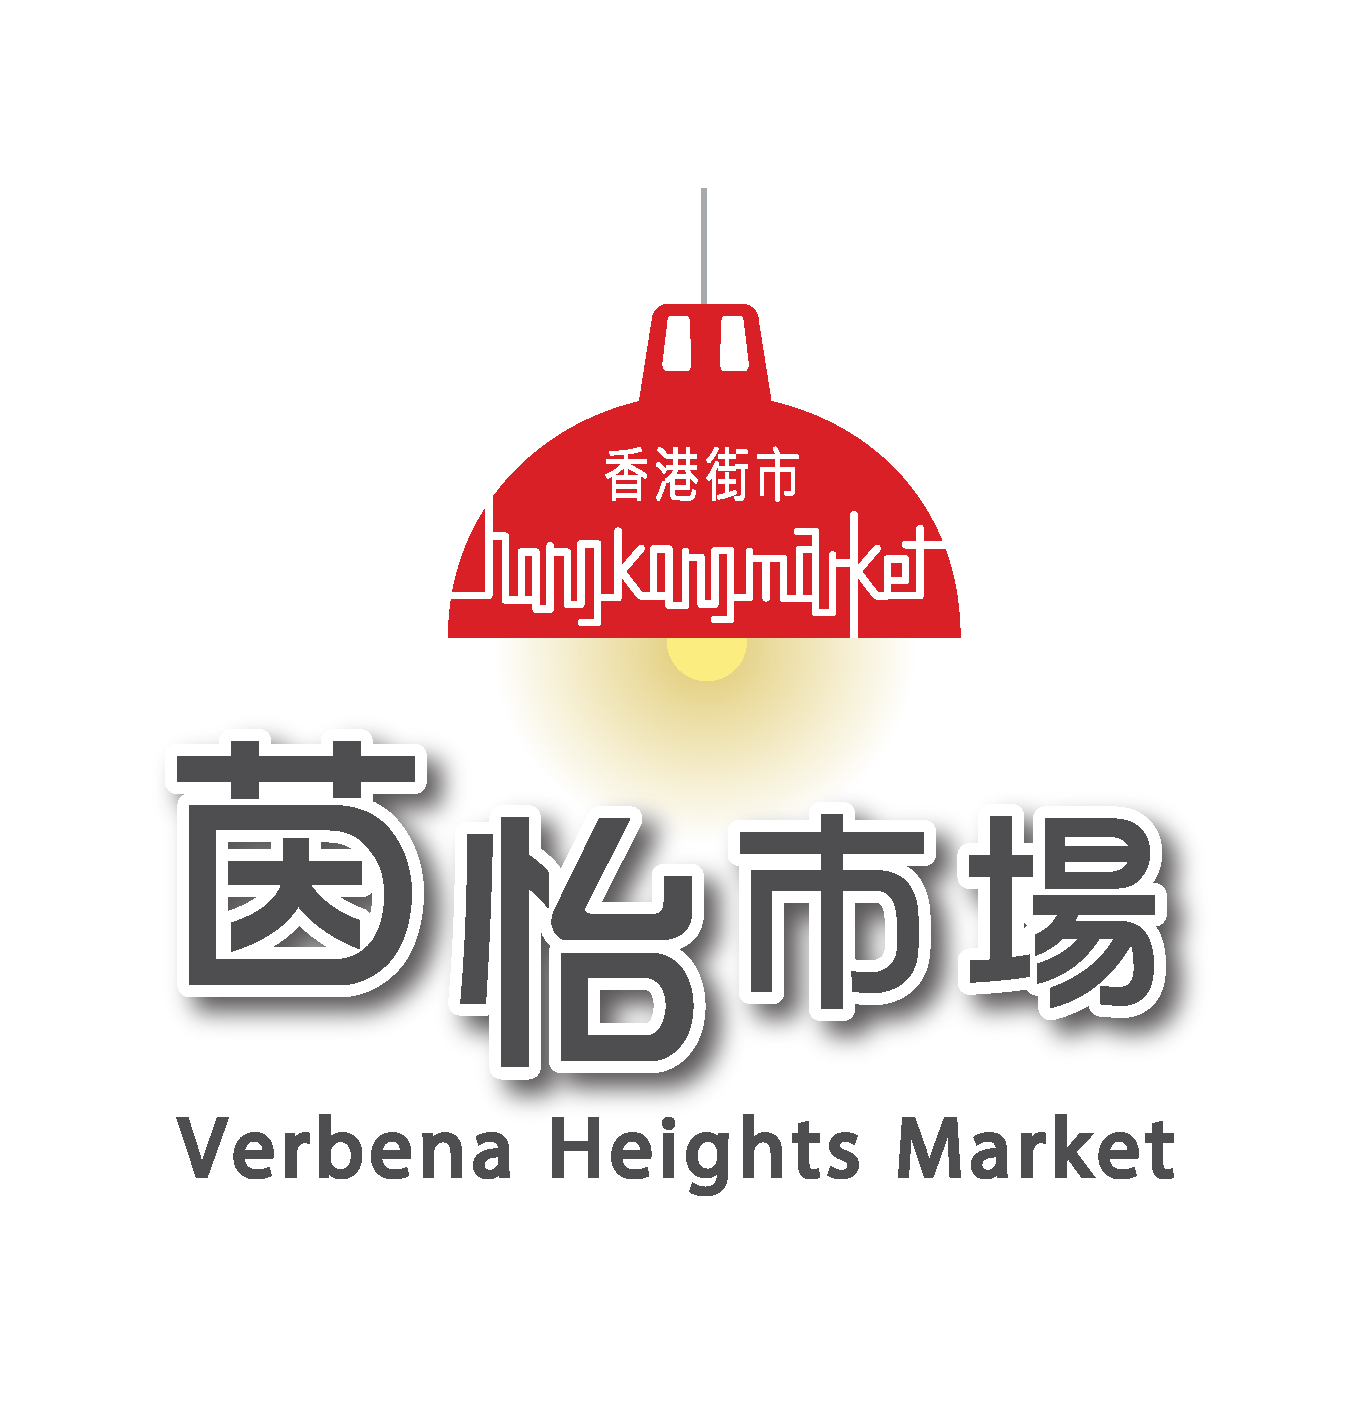 Verbena Heights Market